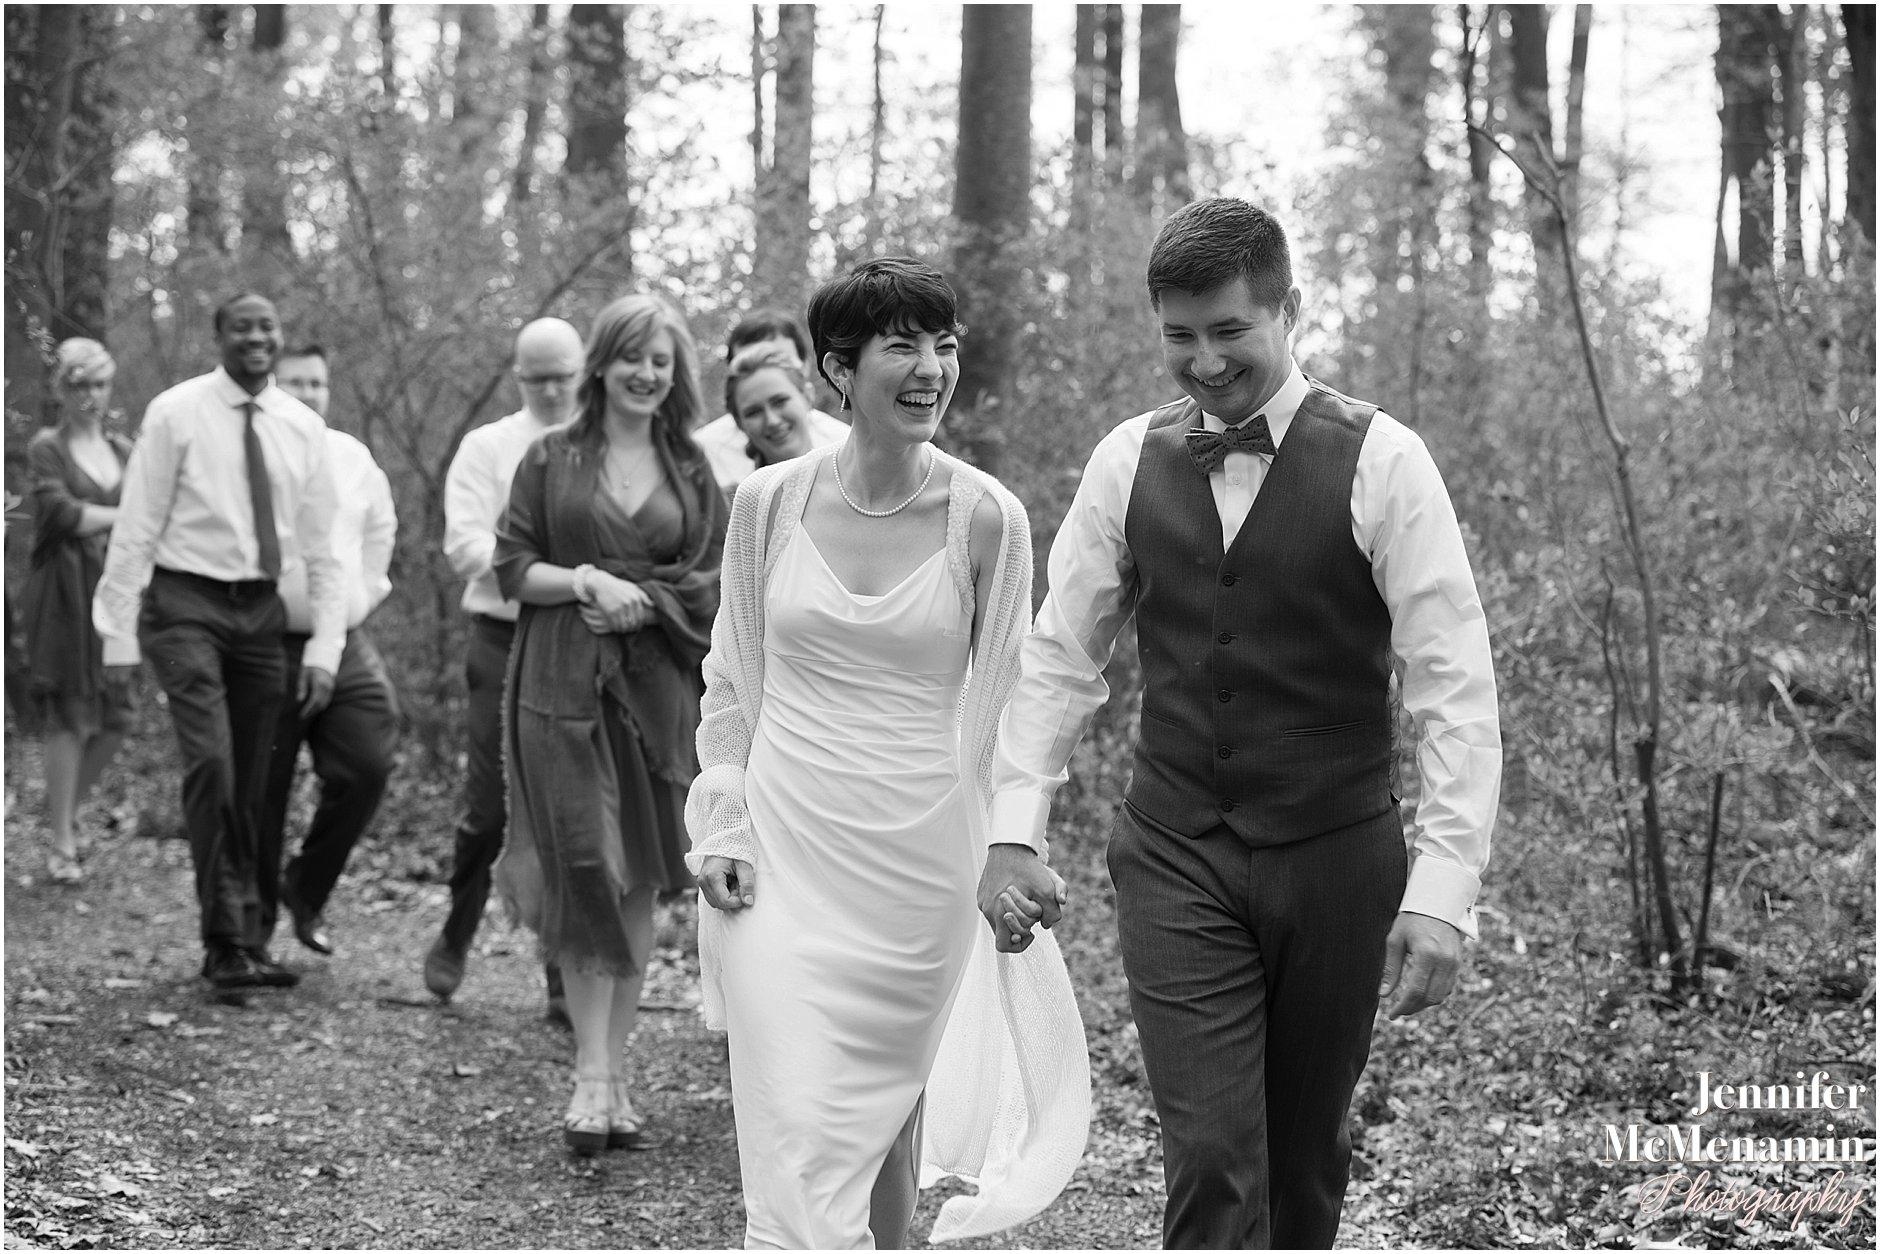 017-EastonNovikov_00691bw-0144_Jennifer-McMenamin-Photography-Irvine-Nature-Center-wedding